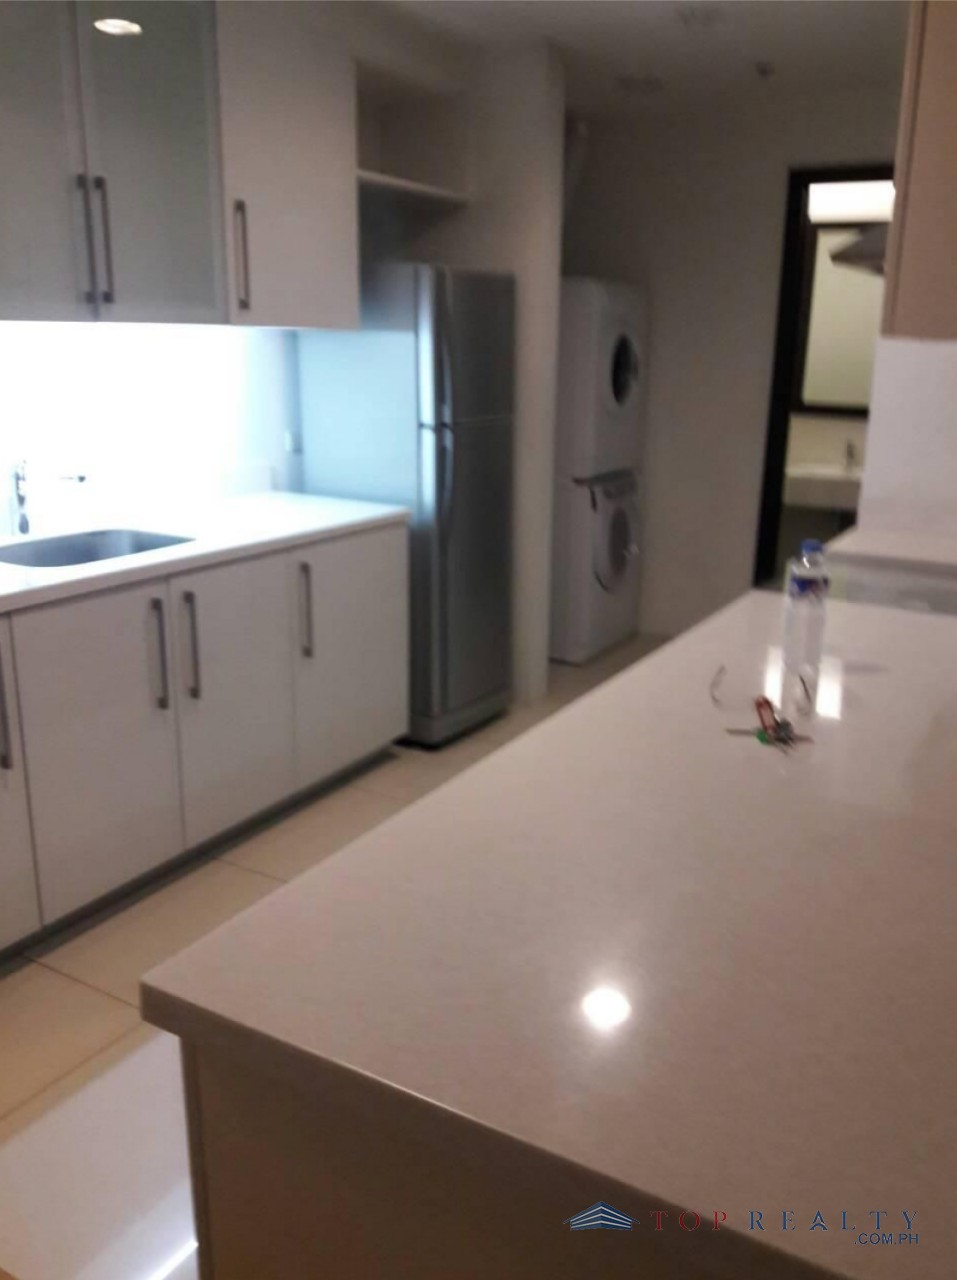 One Bedroom For Rent: Special One Bedroom 1BR Condo For